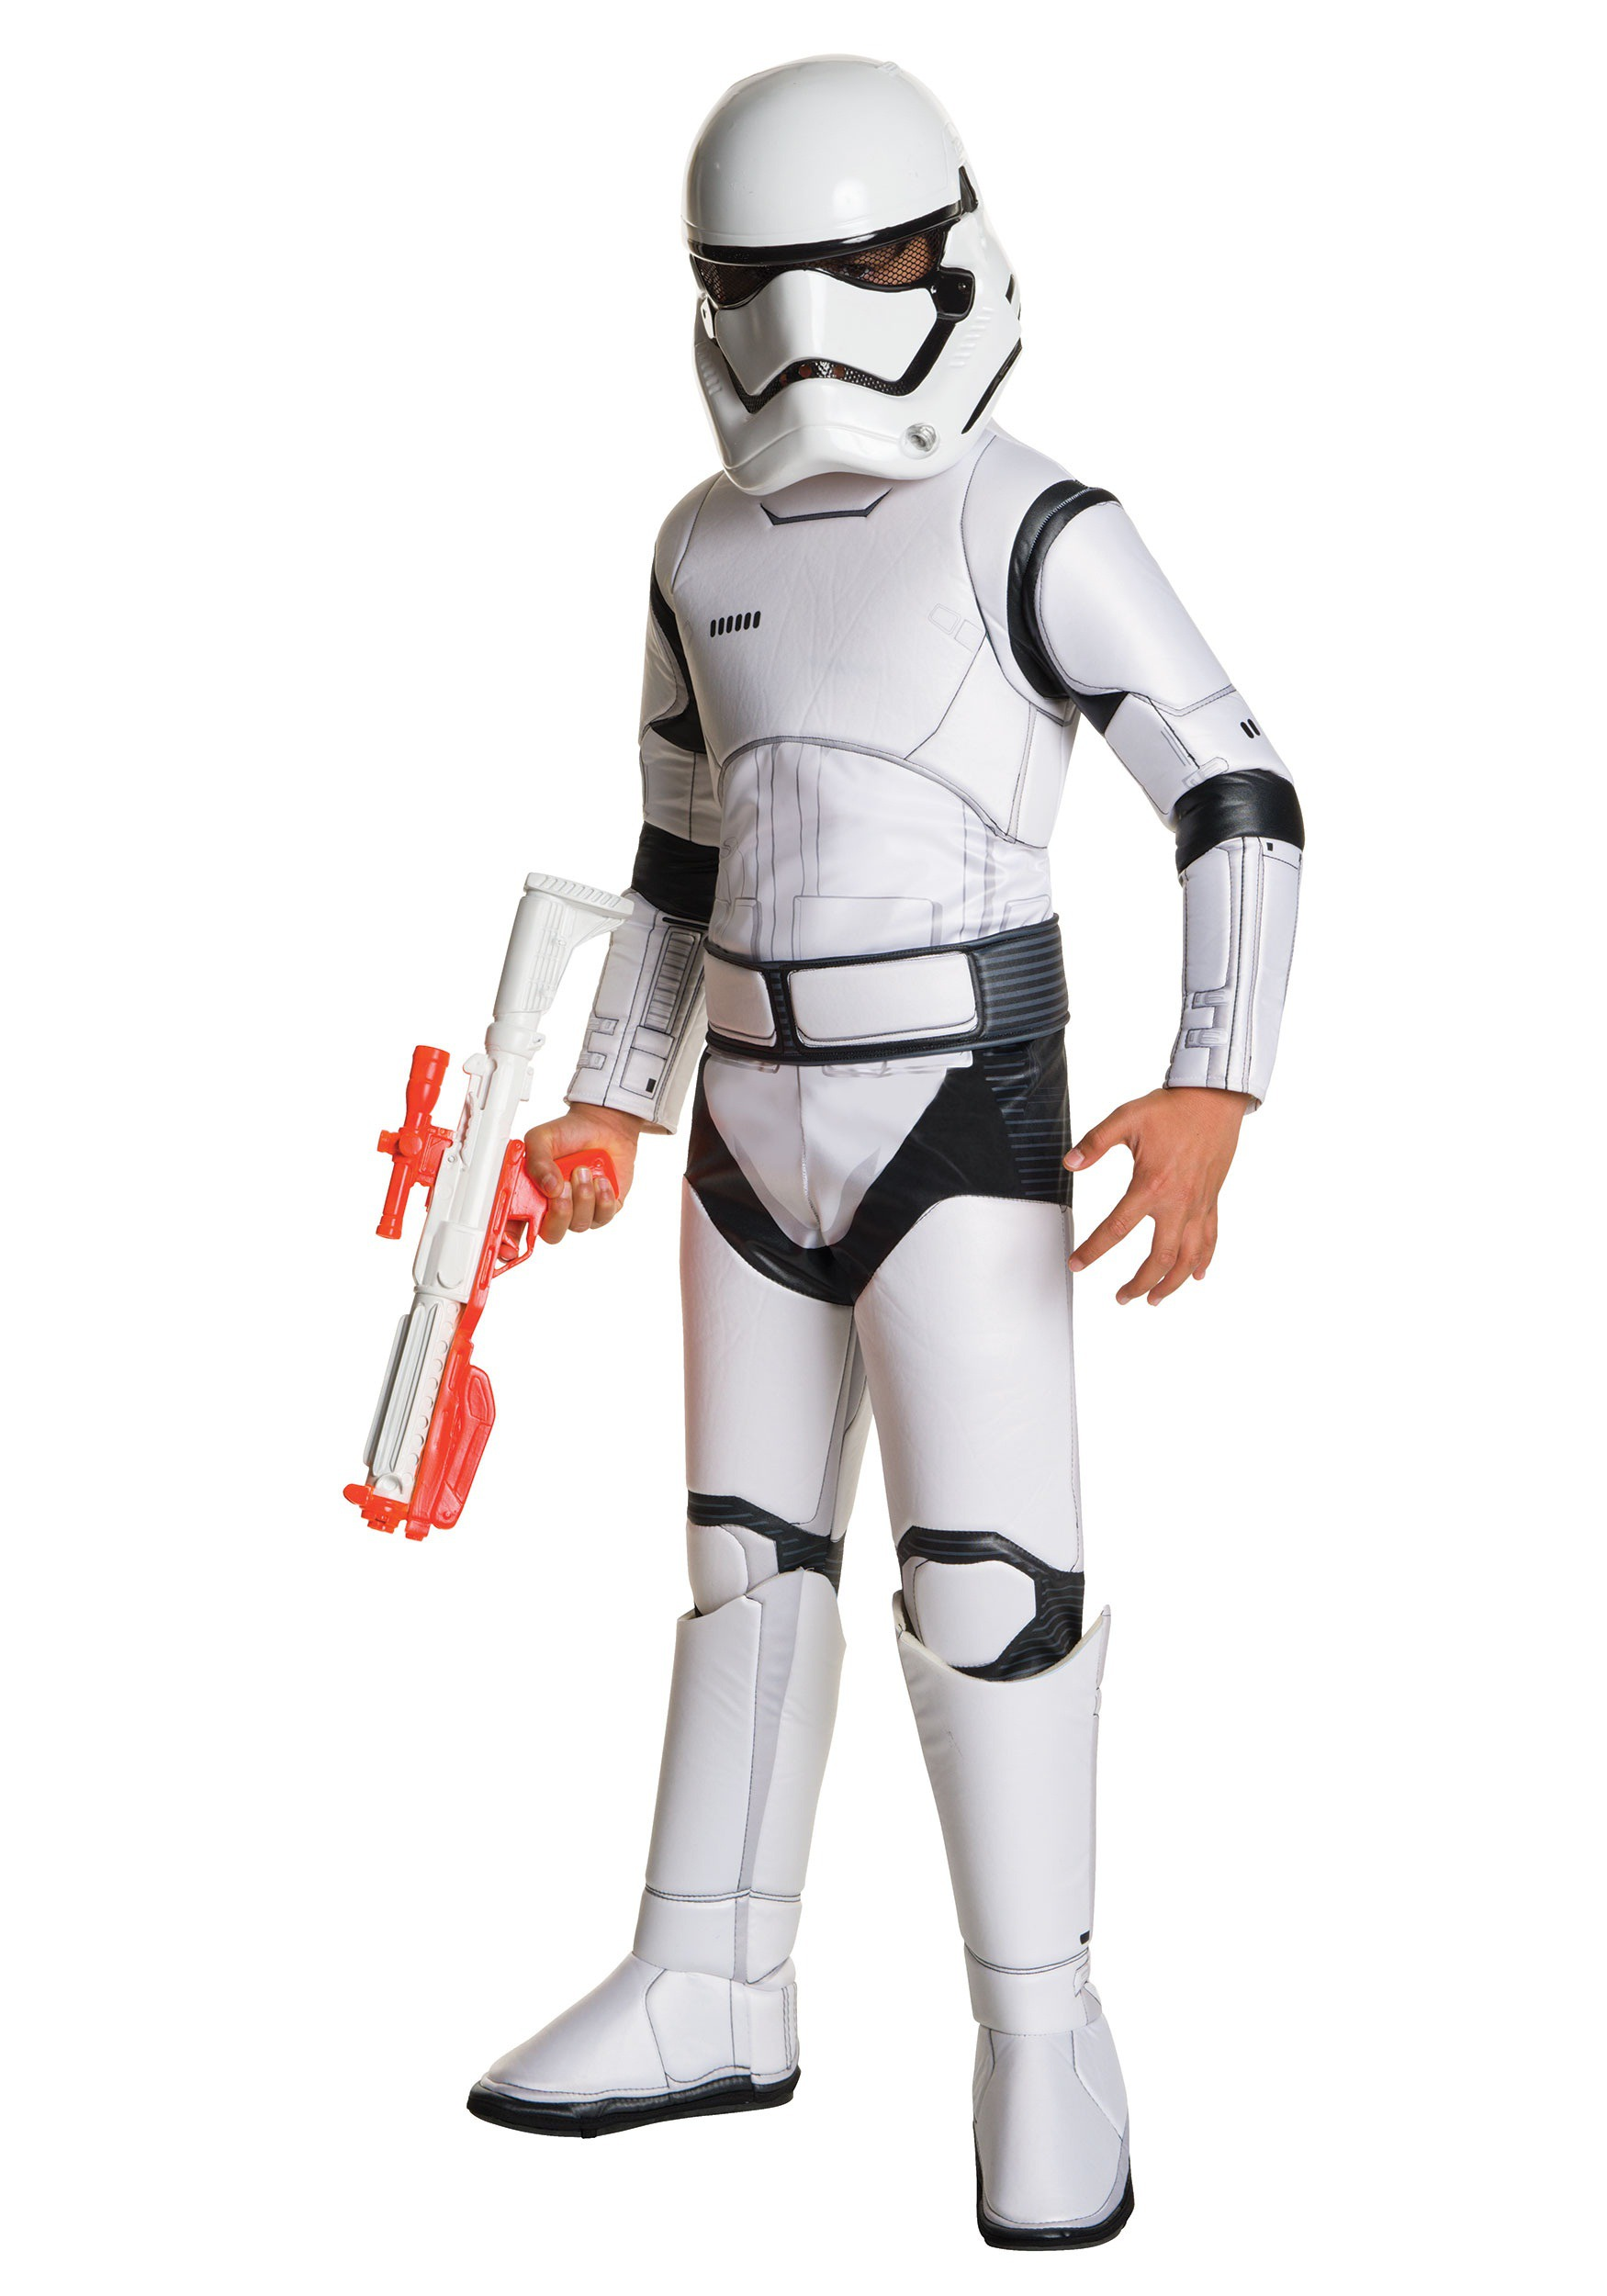 Stormtrooper costumes armor halloweencostumes child deluxe star wars ep 7 stormtrooper costume solutioingenieria Gallery